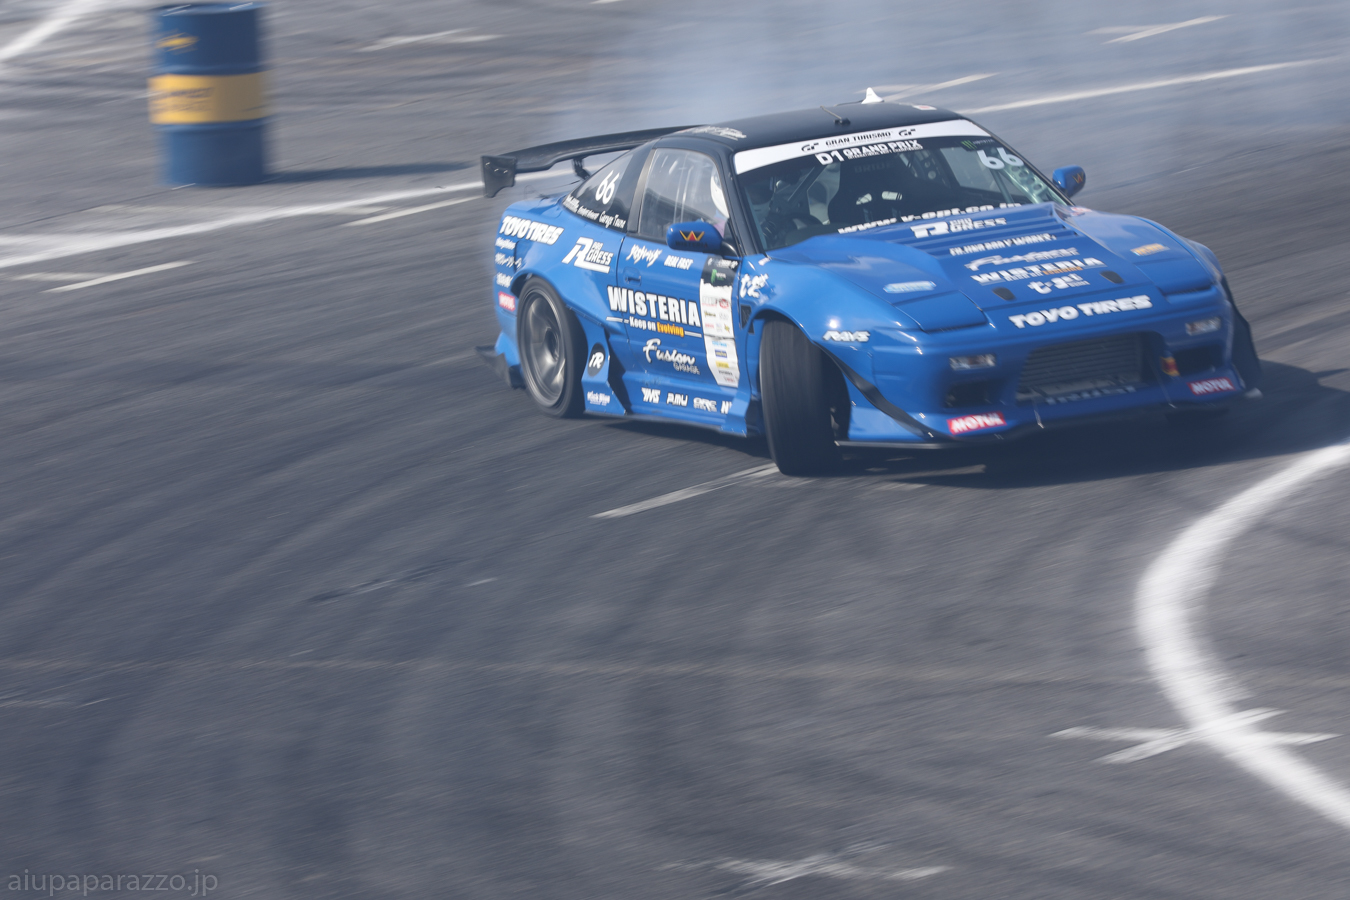 d1gp_tan2016lap3-7.jpg